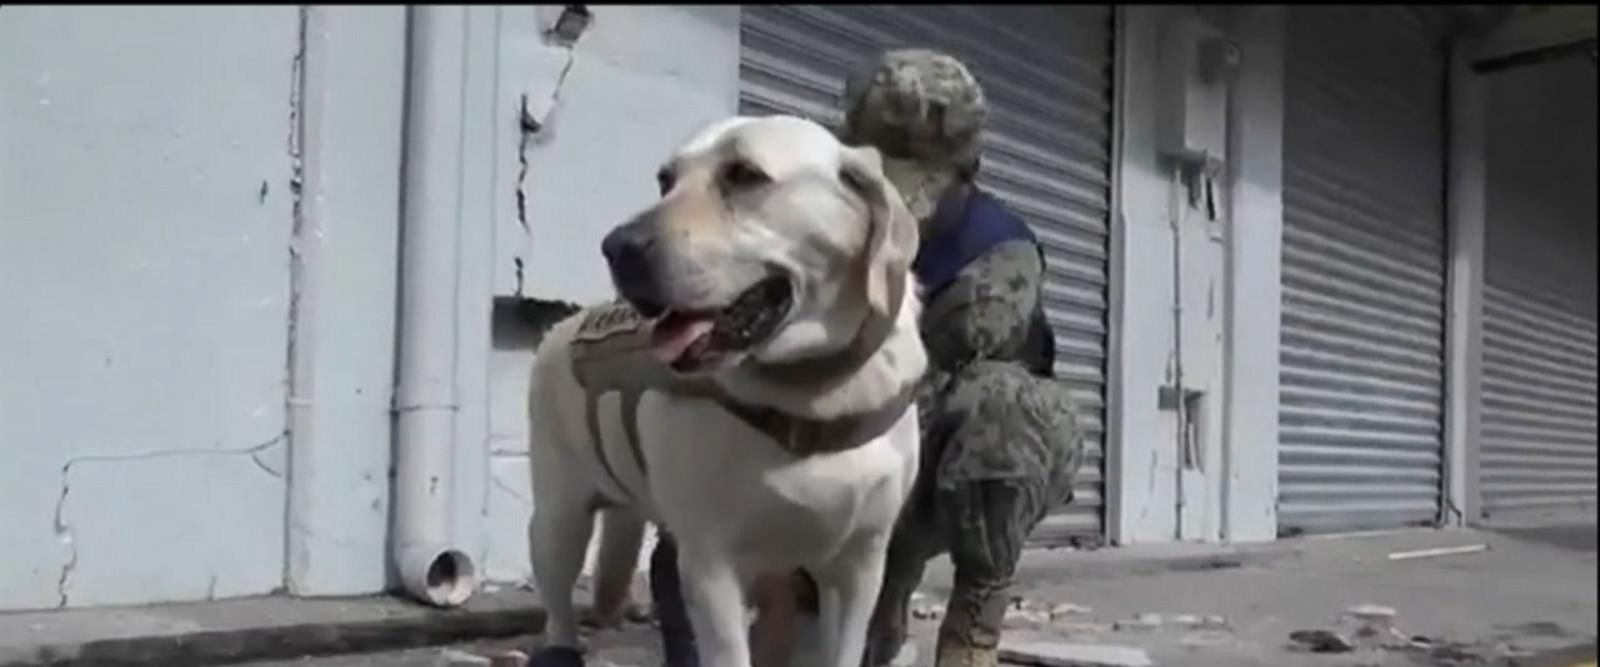 VIDEO: 4-legged hero amongst the first responders in Mexico City